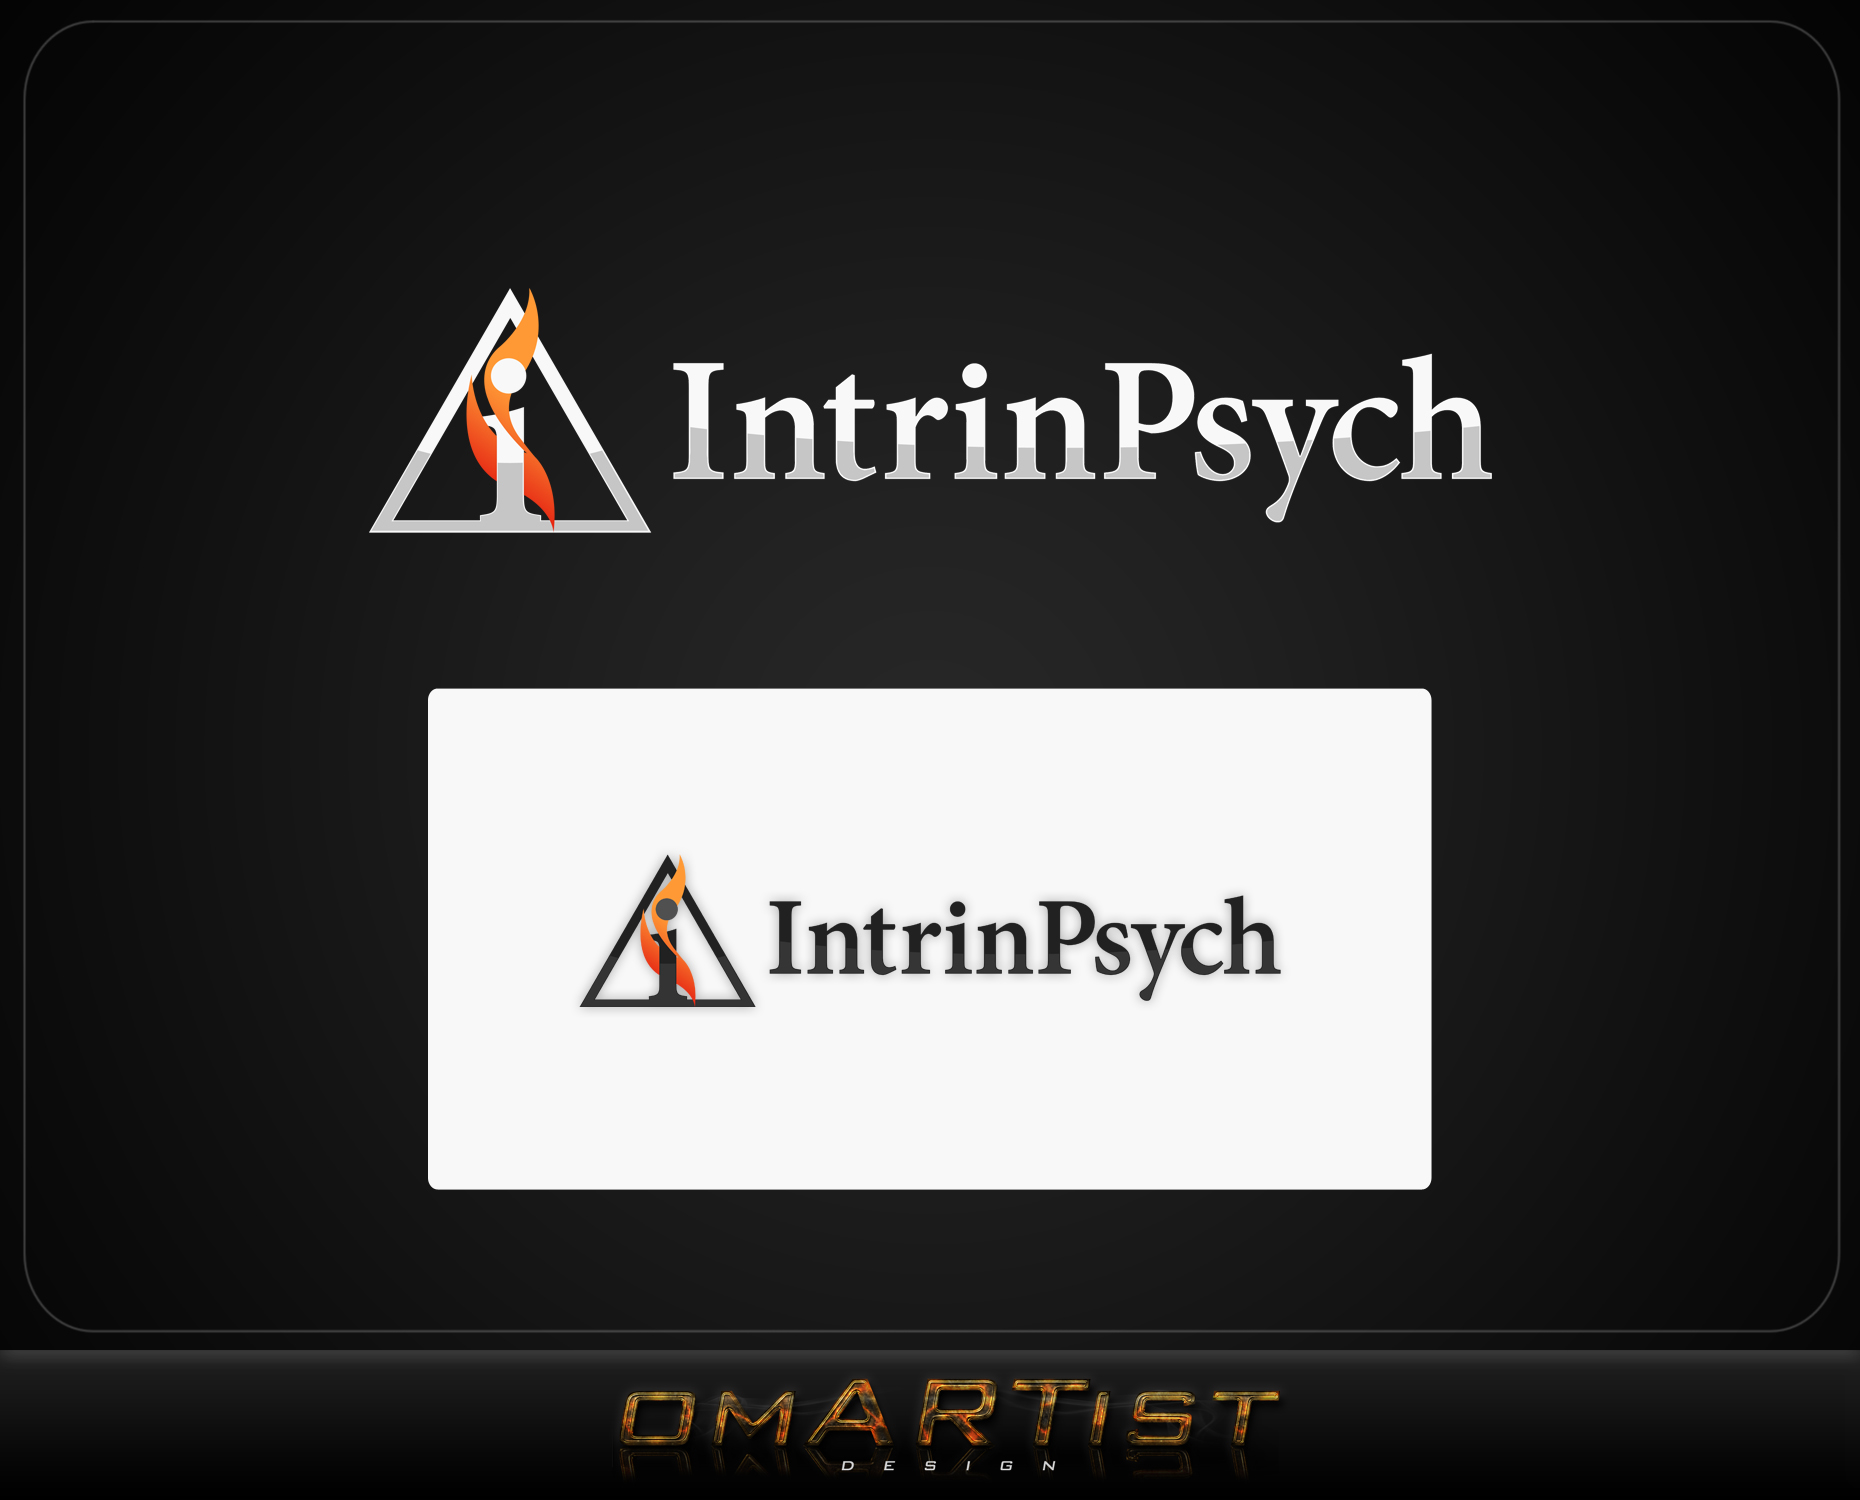 Logo Design by omARTist - Entry No. 40 in the Logo Design Contest New Logo Design for IntrinPsych.